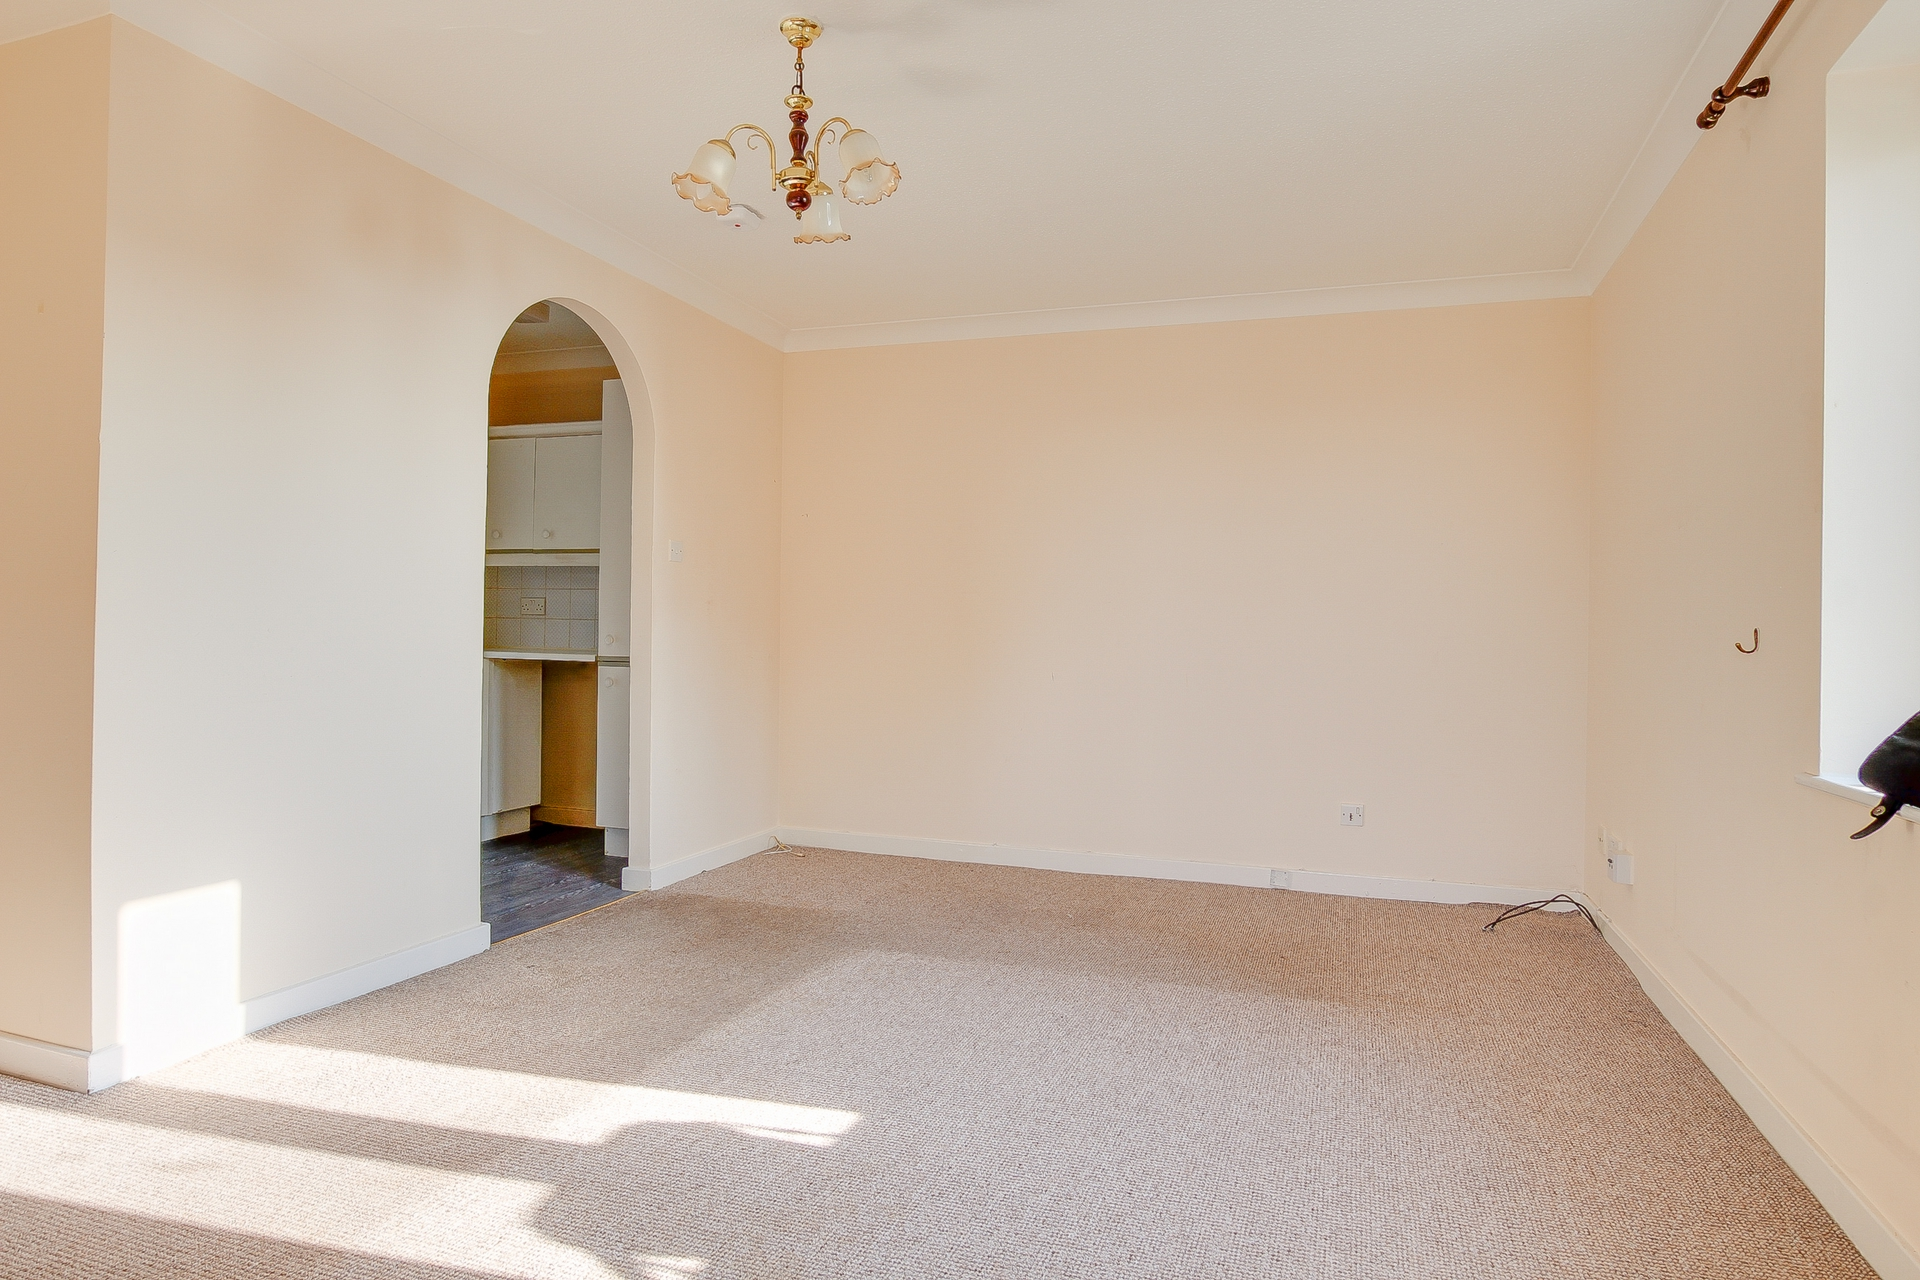 2 bed flat to rent in Victoria Road, Ramsgate, CT11  - Property Image 8